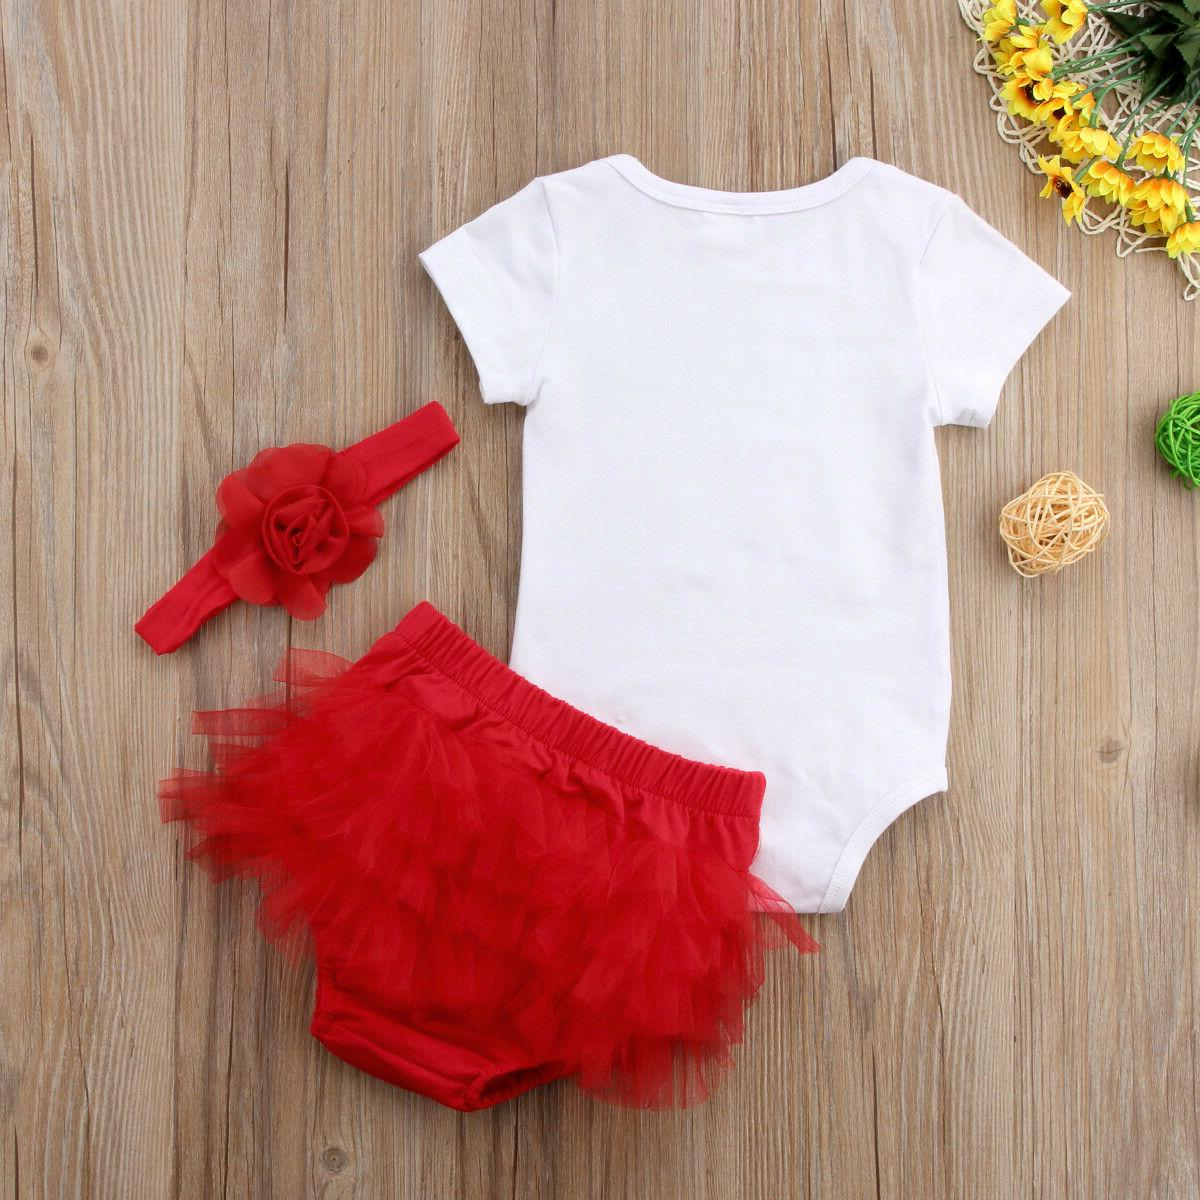 Infant Baby Clothes Romper Set